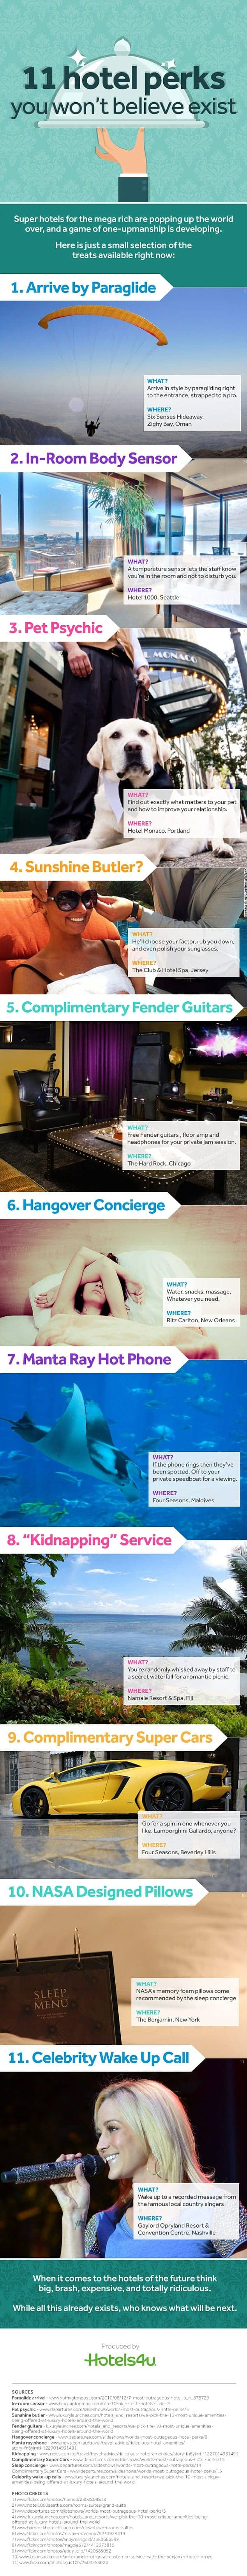 11 Hotel Perks You Won't Believe Exist